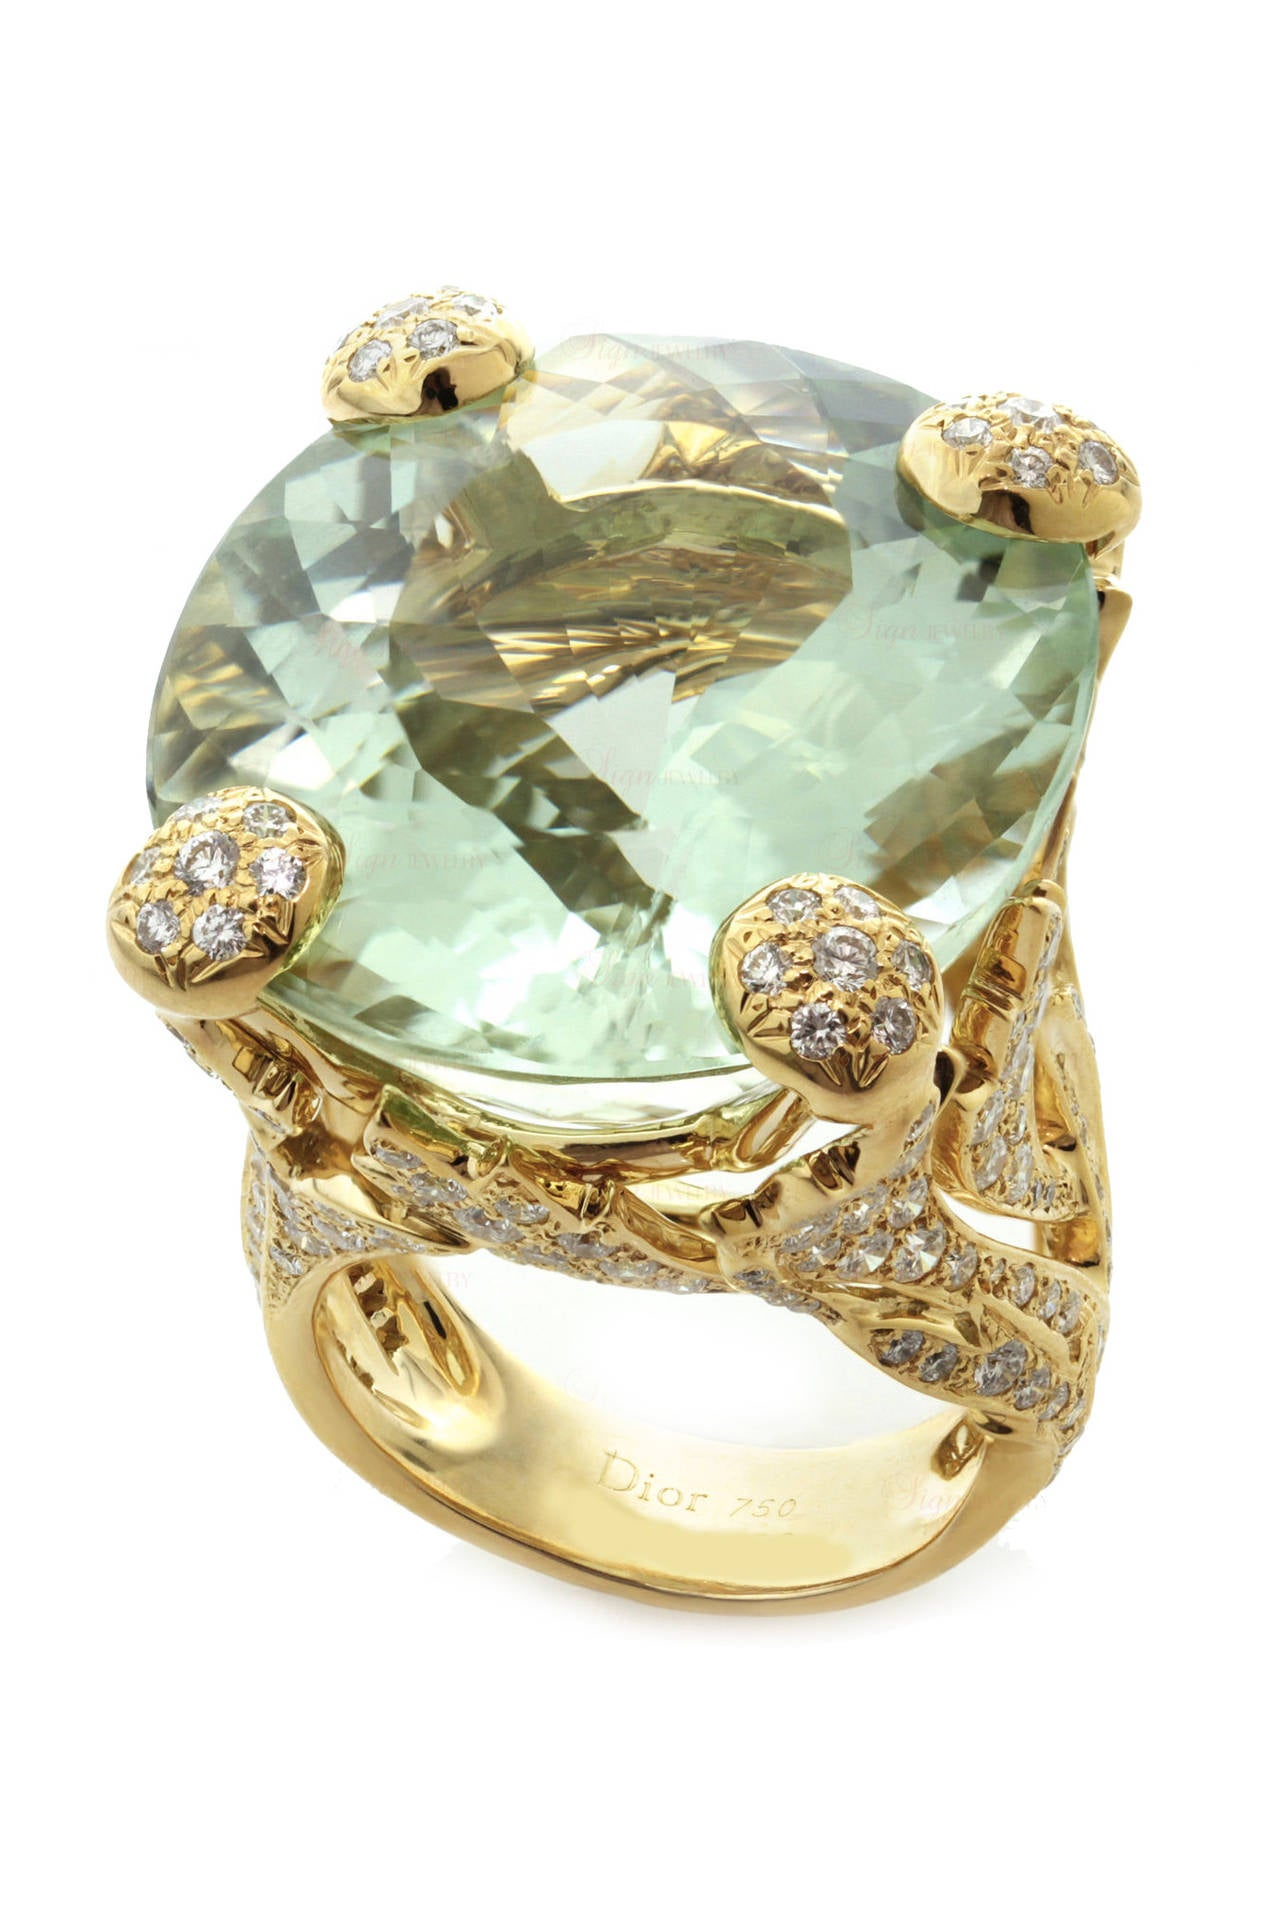 Christian Dior Green Beryl Diamond Gold Ring For Sale At